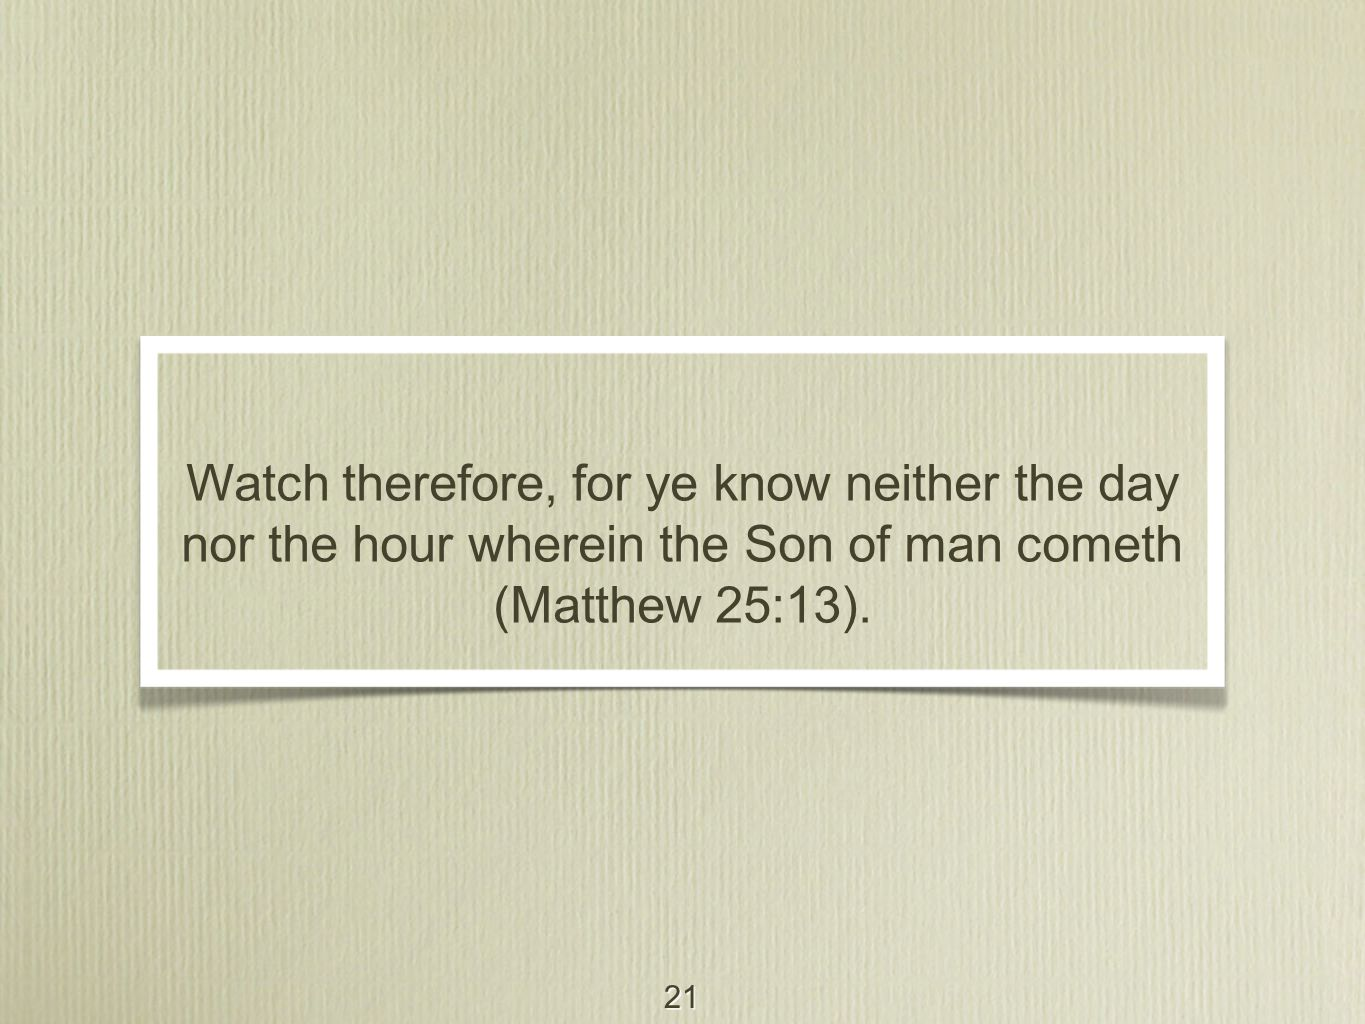 21 Watch therefore, for ye know neither the day nor the hour wherein the Son of man cometh (Matthew 25:13).